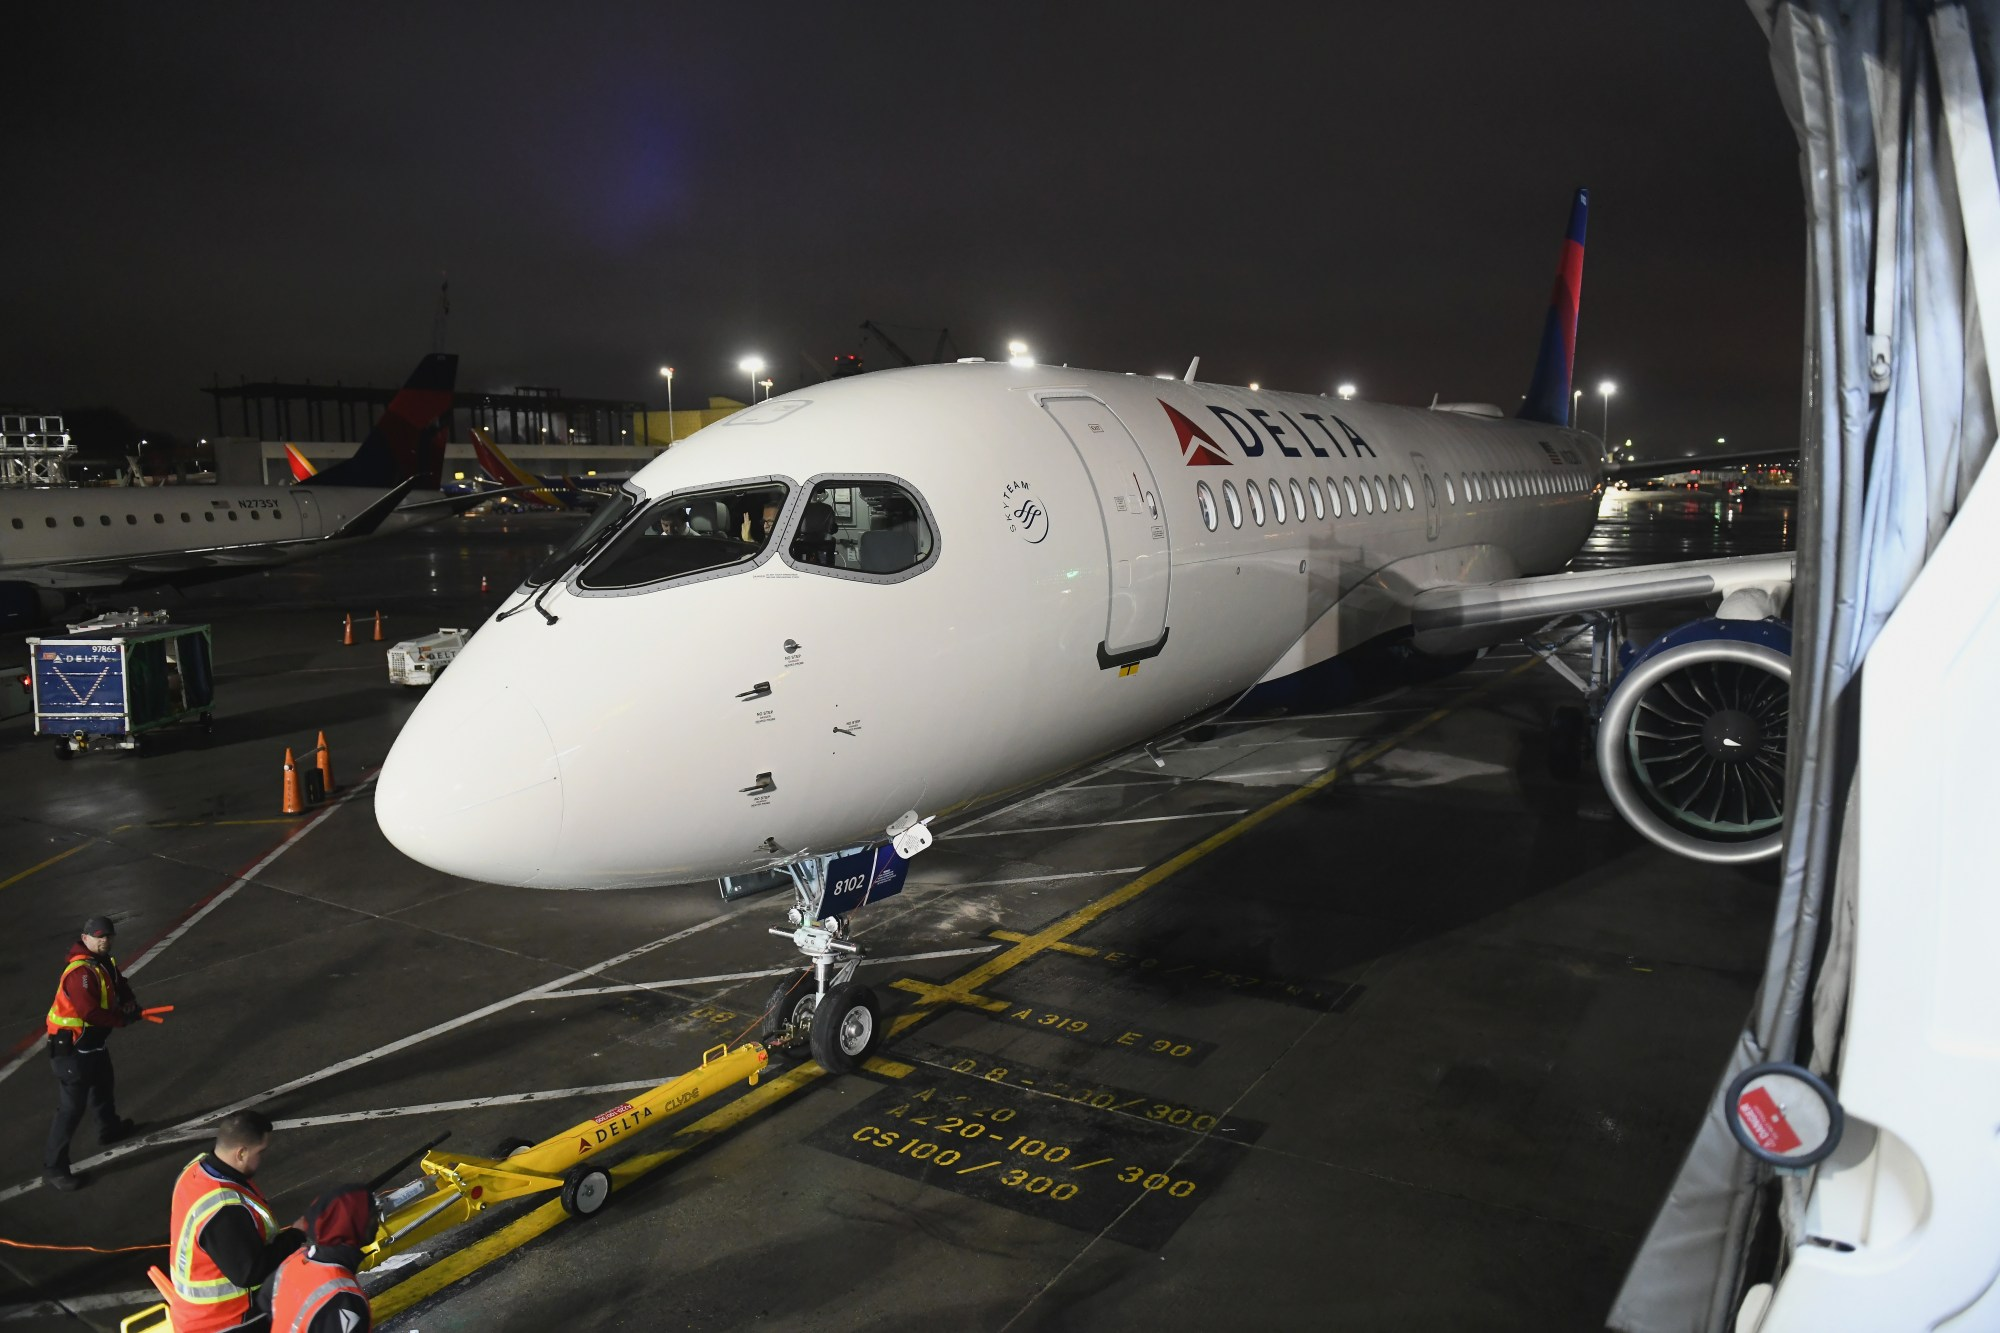 Delta Air Lines celebrates the launch of a new aircraft at LaGuardia Airport on Feb. 7, 2019, in New York City. (Credit: Noam Galai/Getty Images for Delta)